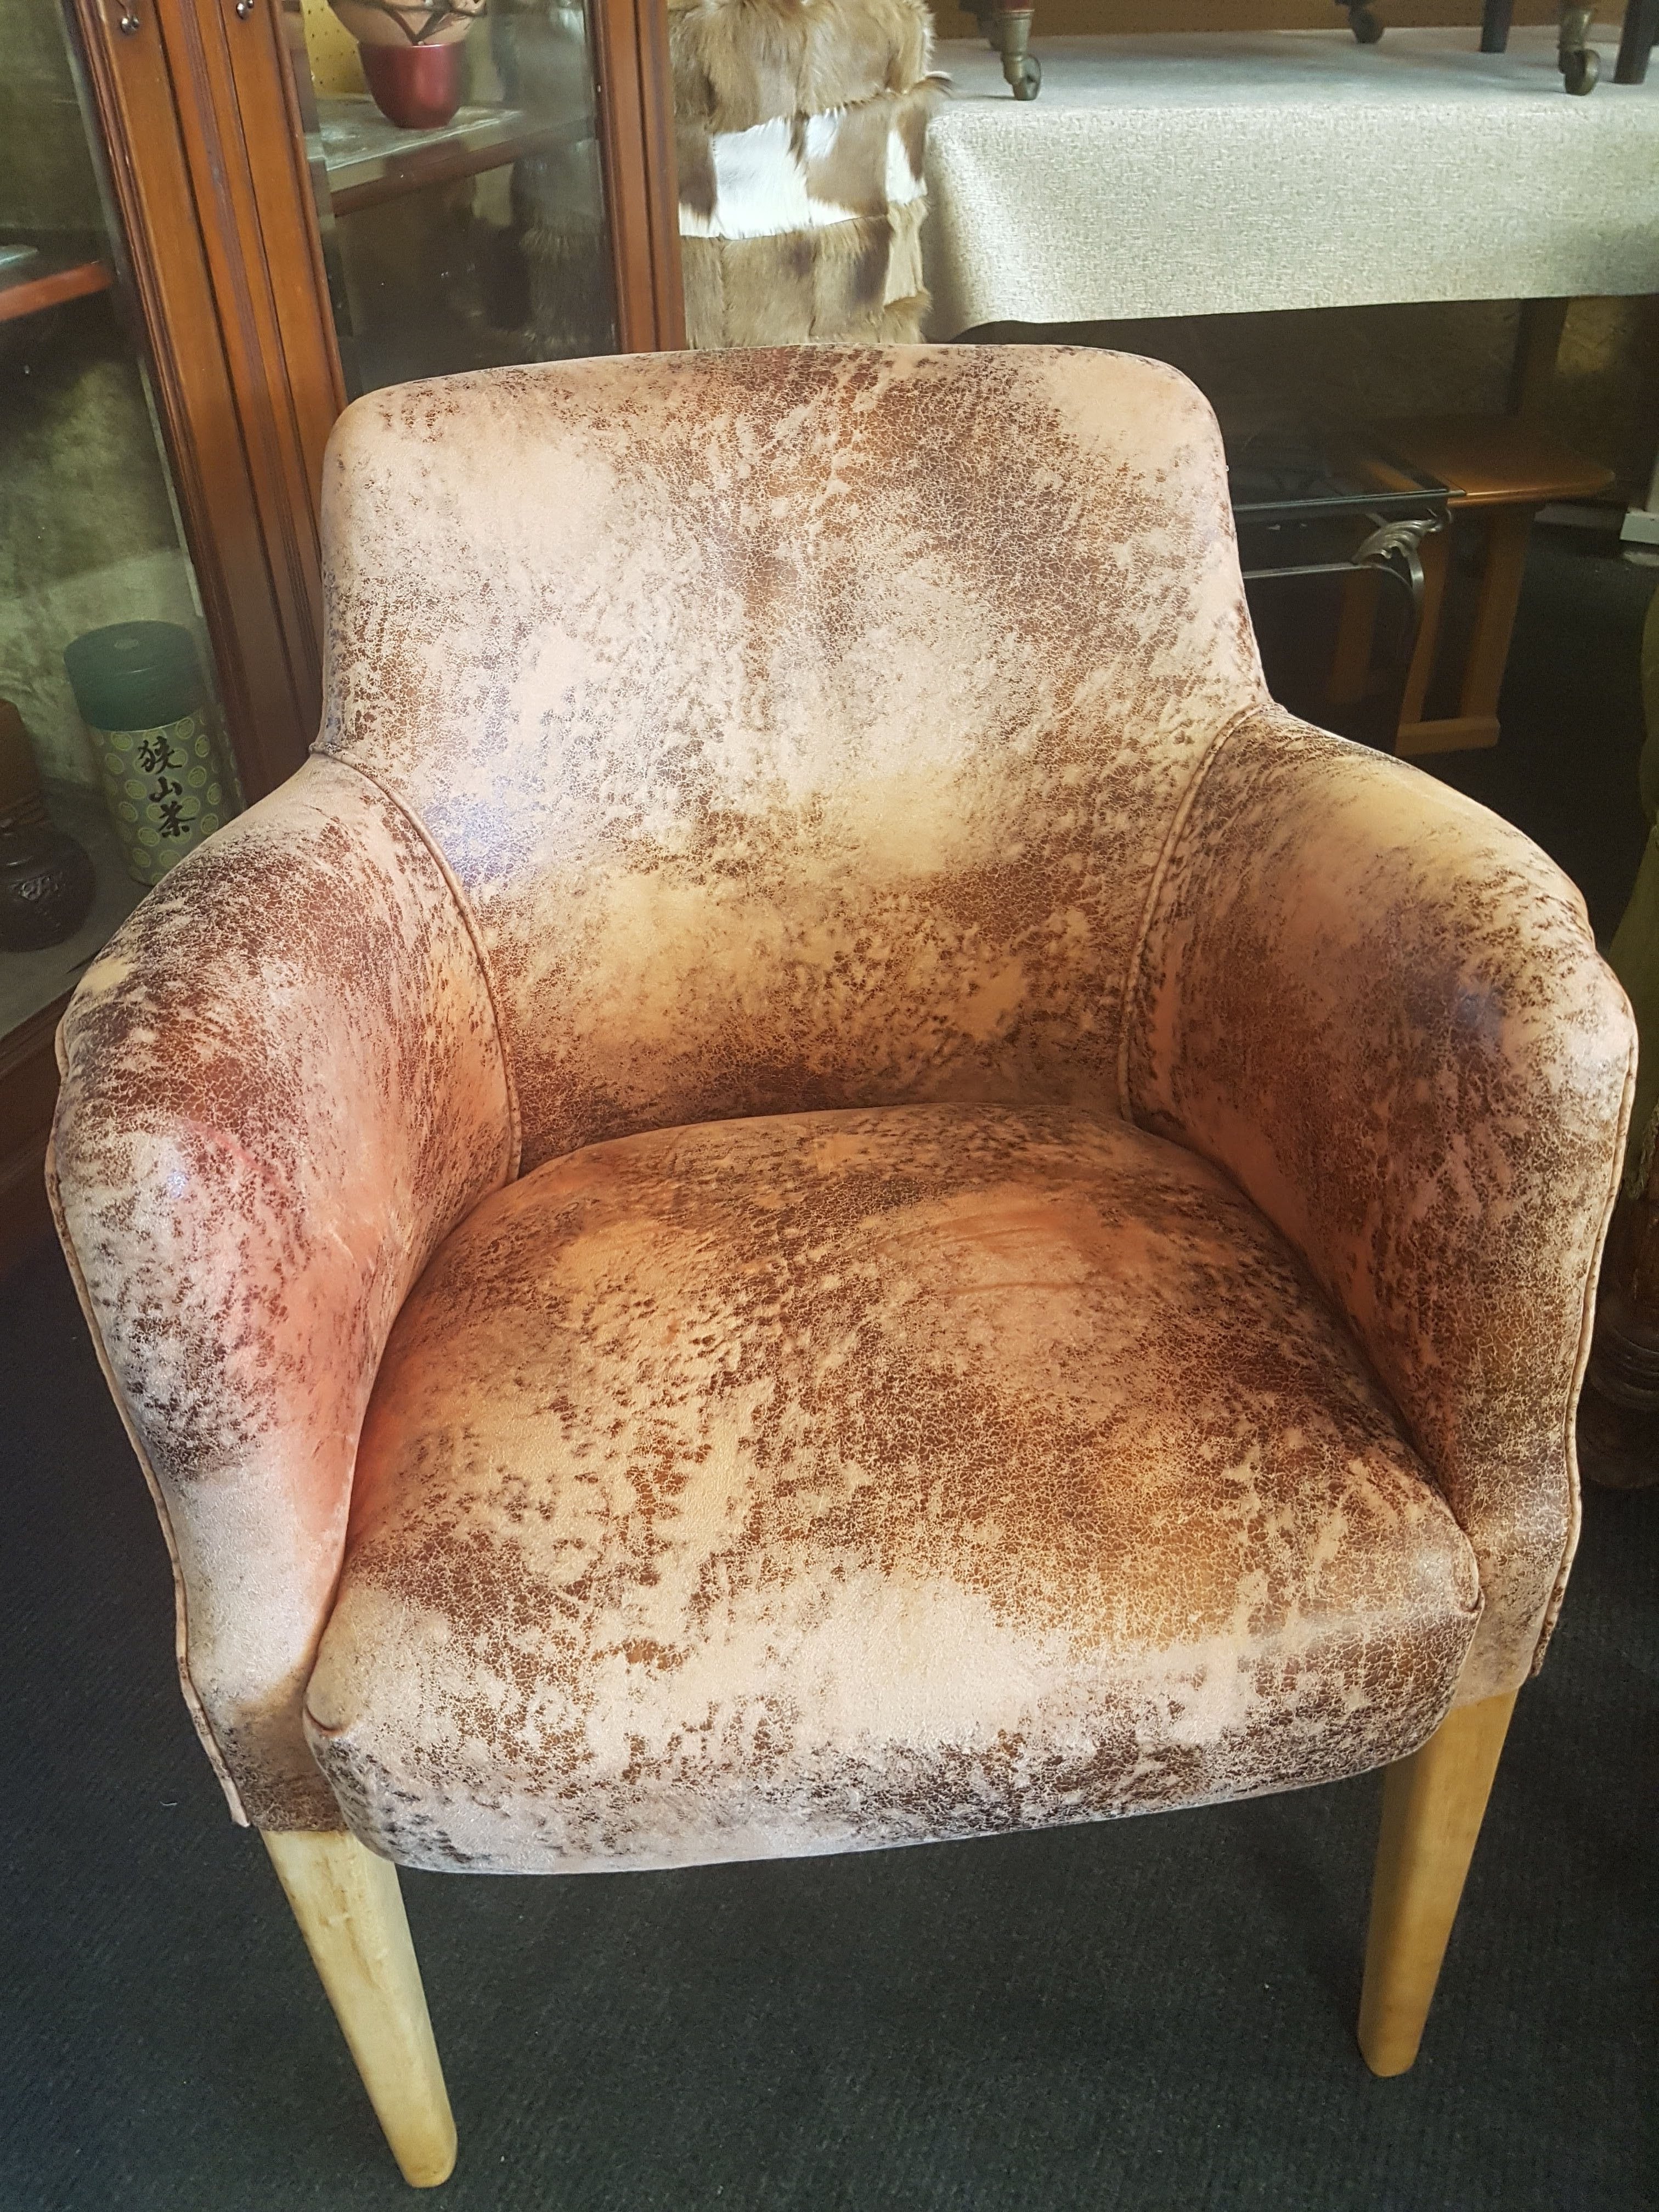 Sofa Upholstery West Sussex Re Upholstered Furniture For Sale Turners Hill Upholsterers